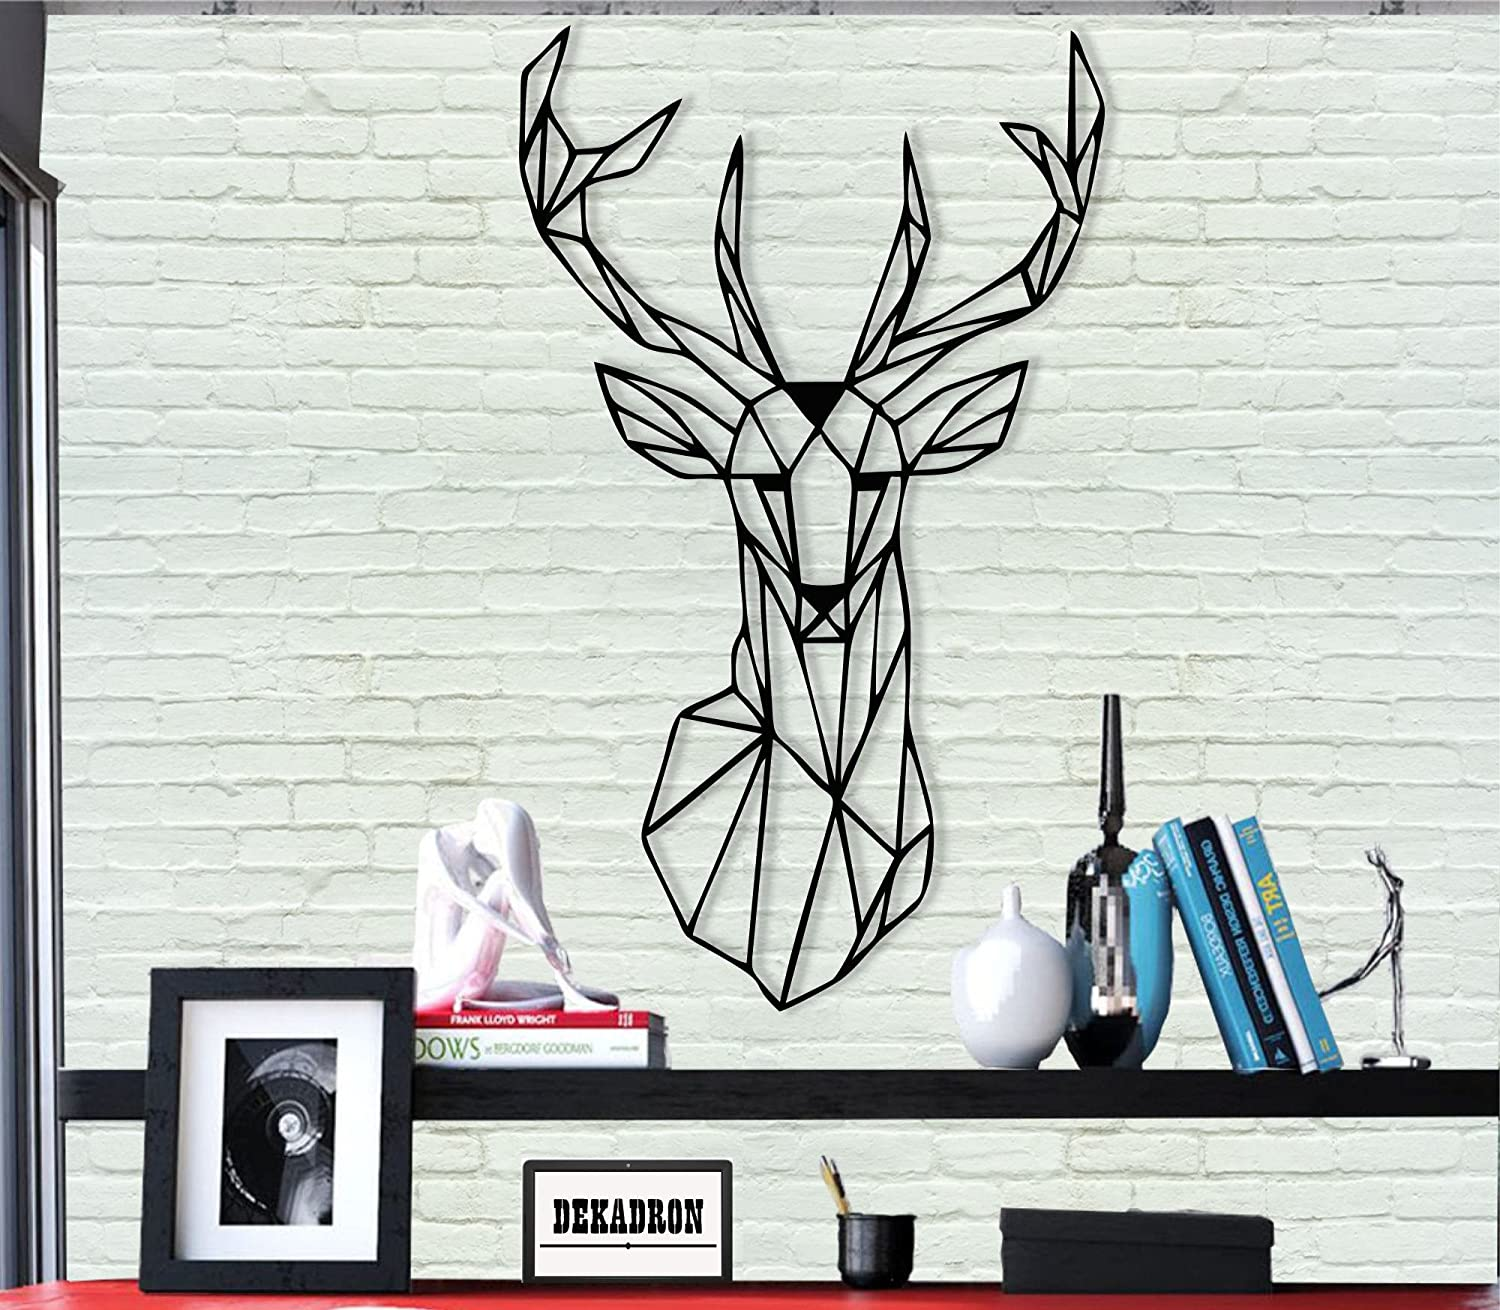 DEKADRON Metal Wall Art - Geometric Deer Head - 3D Wall Silhouette Metal Wall Decor Home Office Decoration Bedroom Living Room Decor Sculpture (18